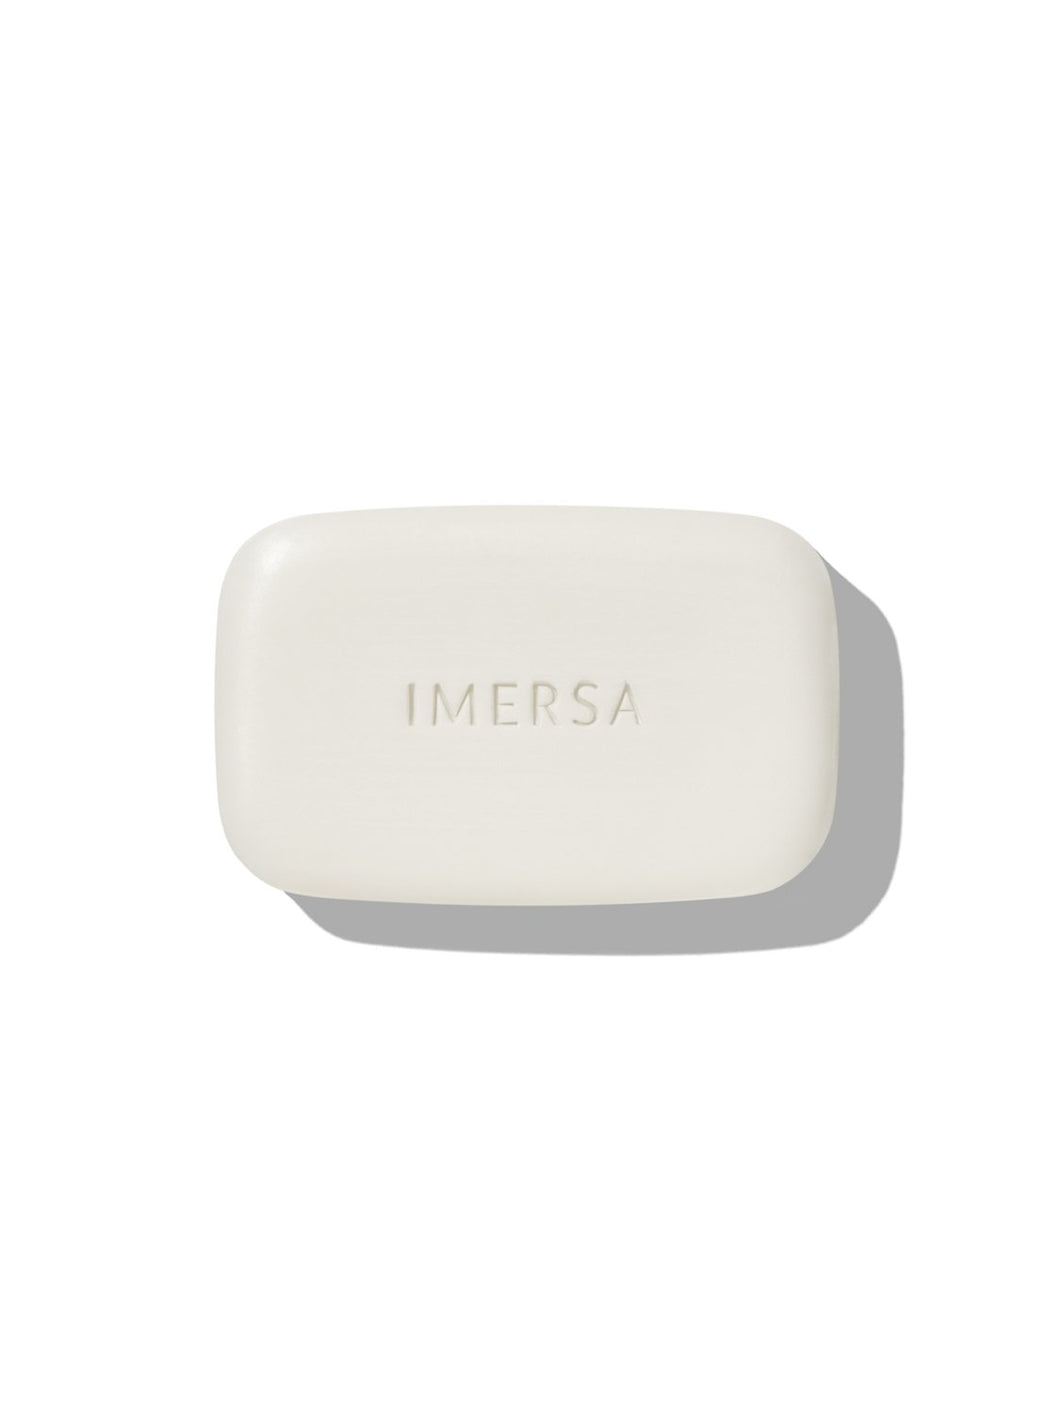 IMERSA Body Bar with Silk Sericin